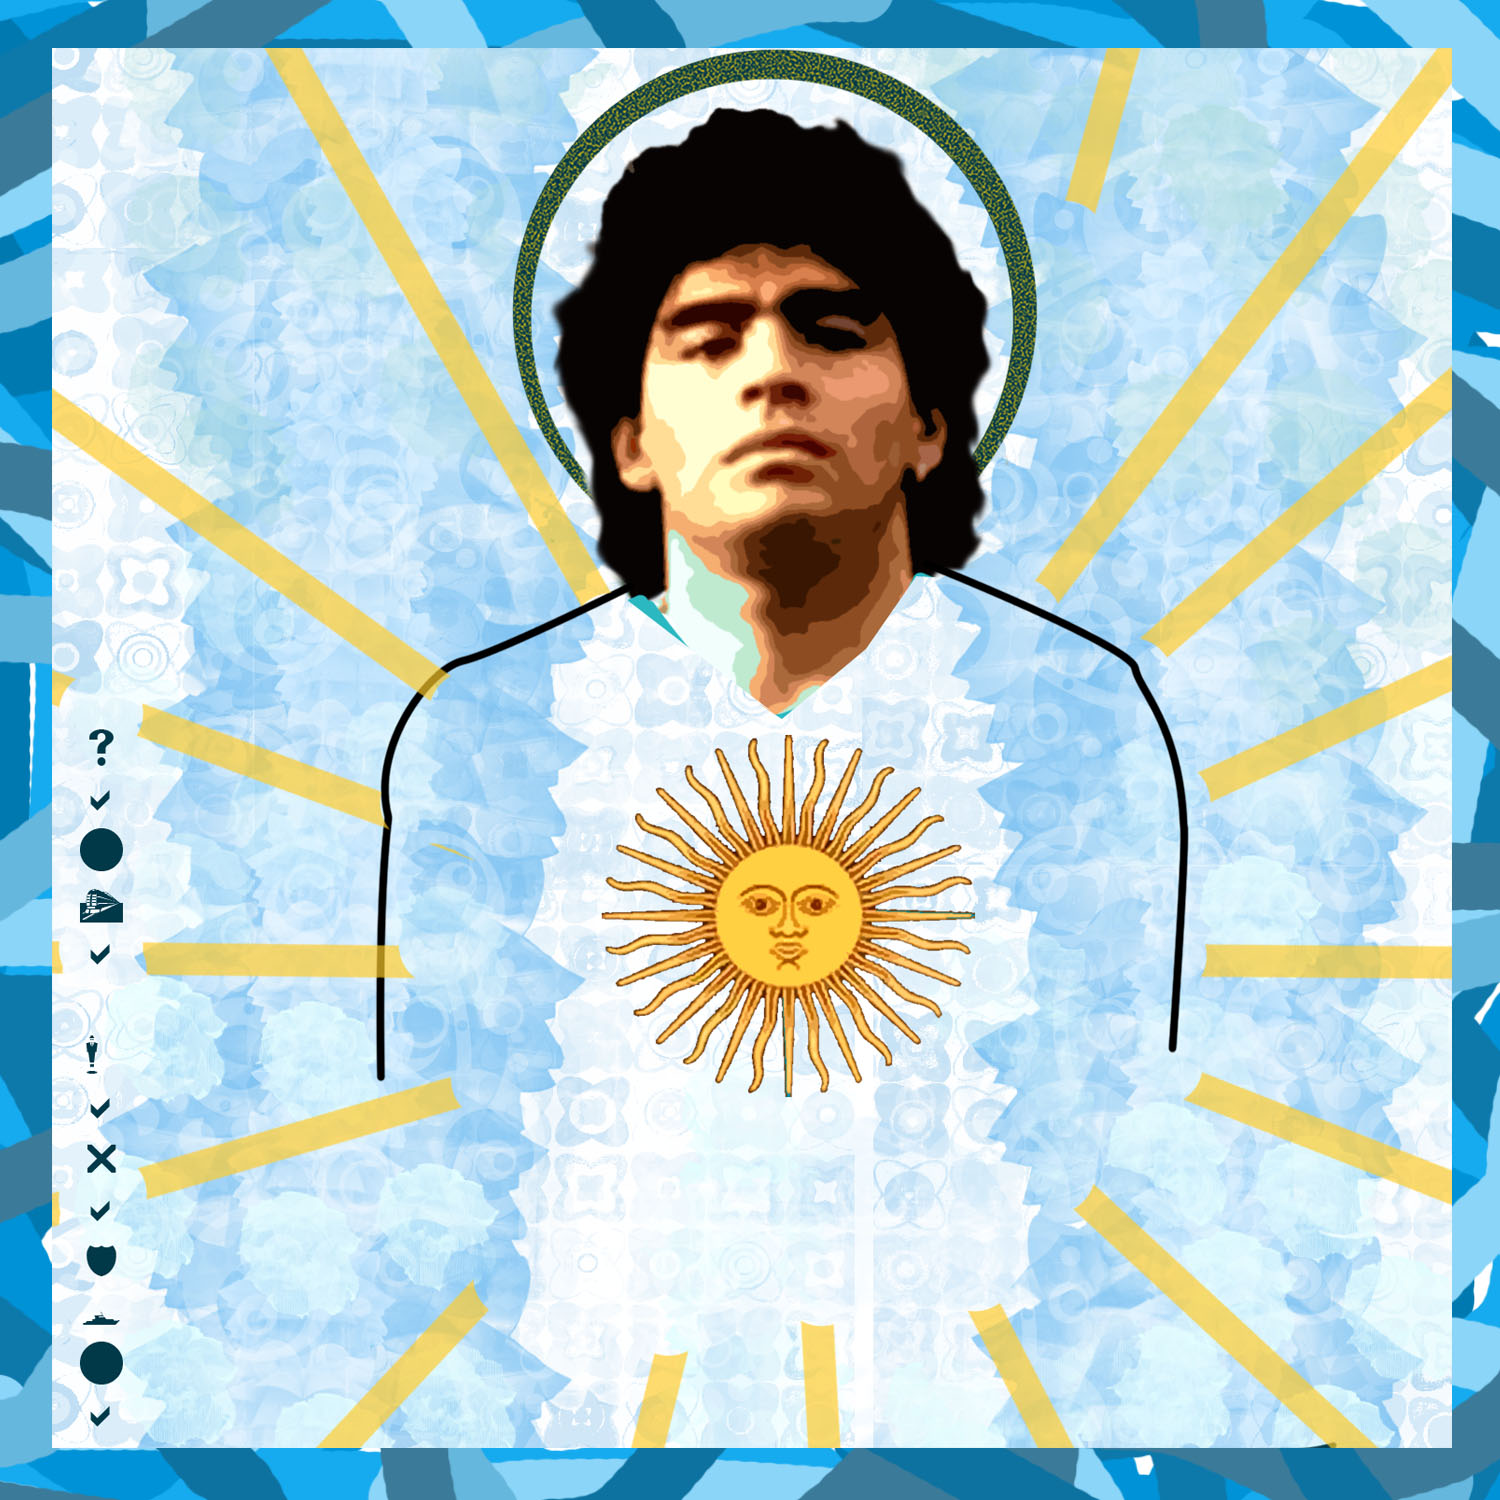 maradona, argentina travel tours - south america travel - vaya adventures